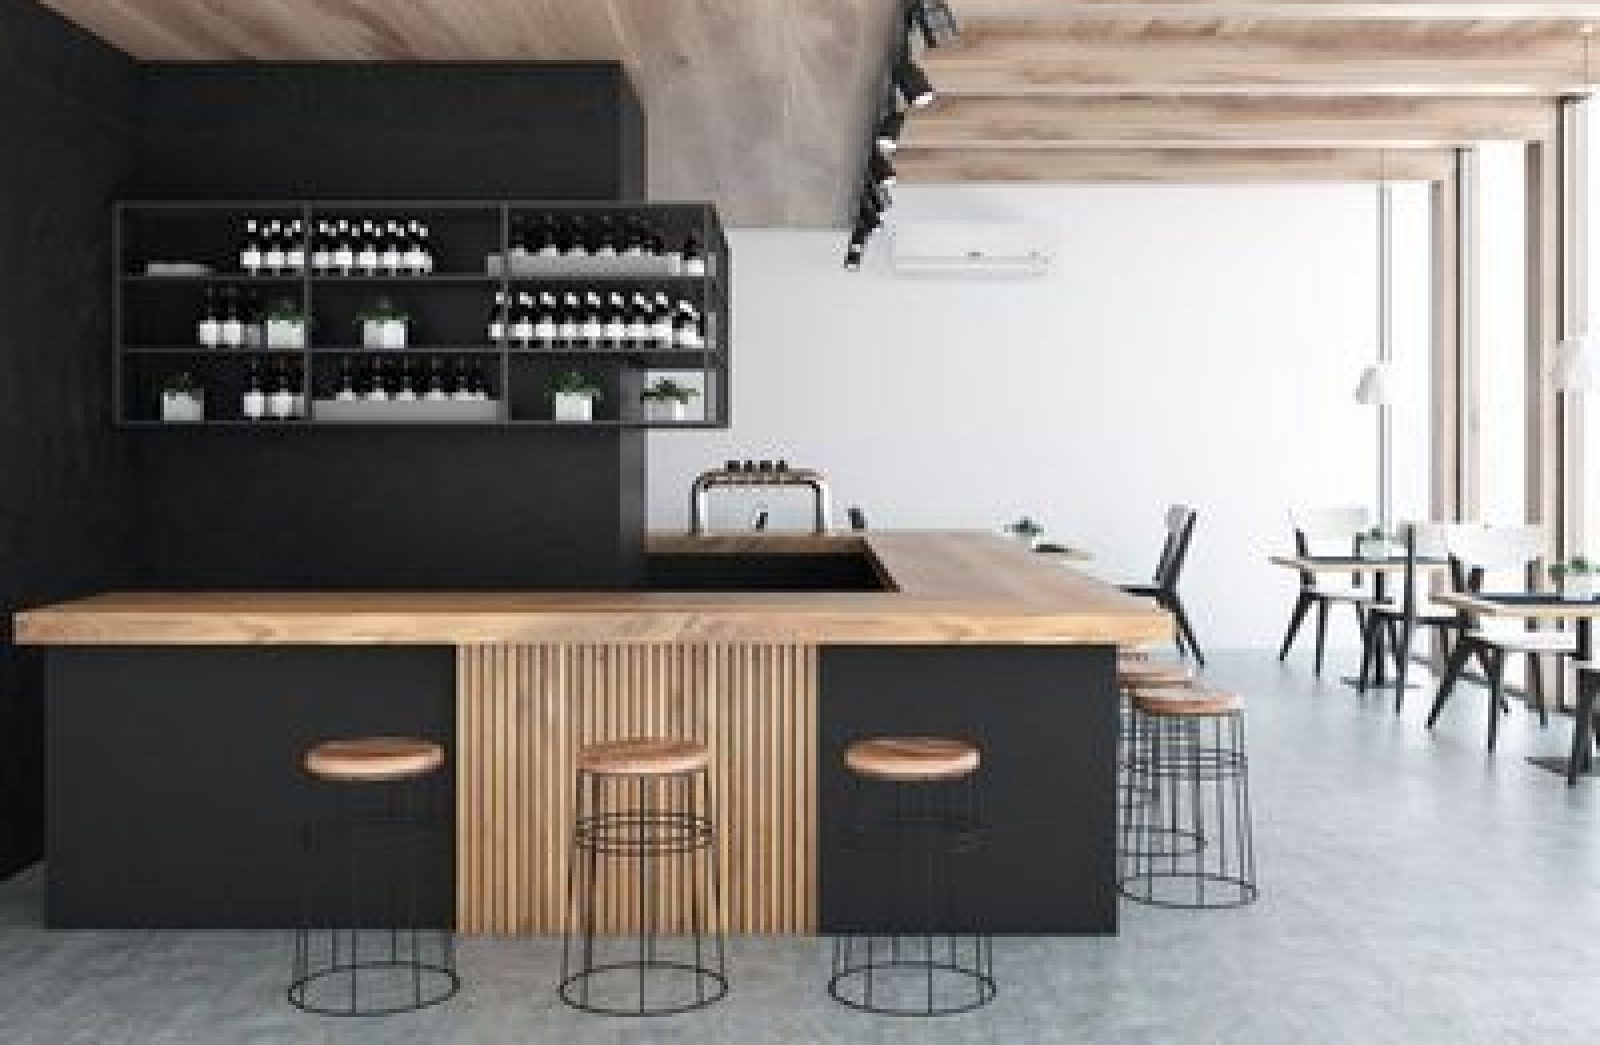 Front view of a black wall bar interior with a concrete floor, a wooden bar and rows of stools standing near it. 3d rendering mock up; Shutterstock ID 1074757415; Client/Licensee: -